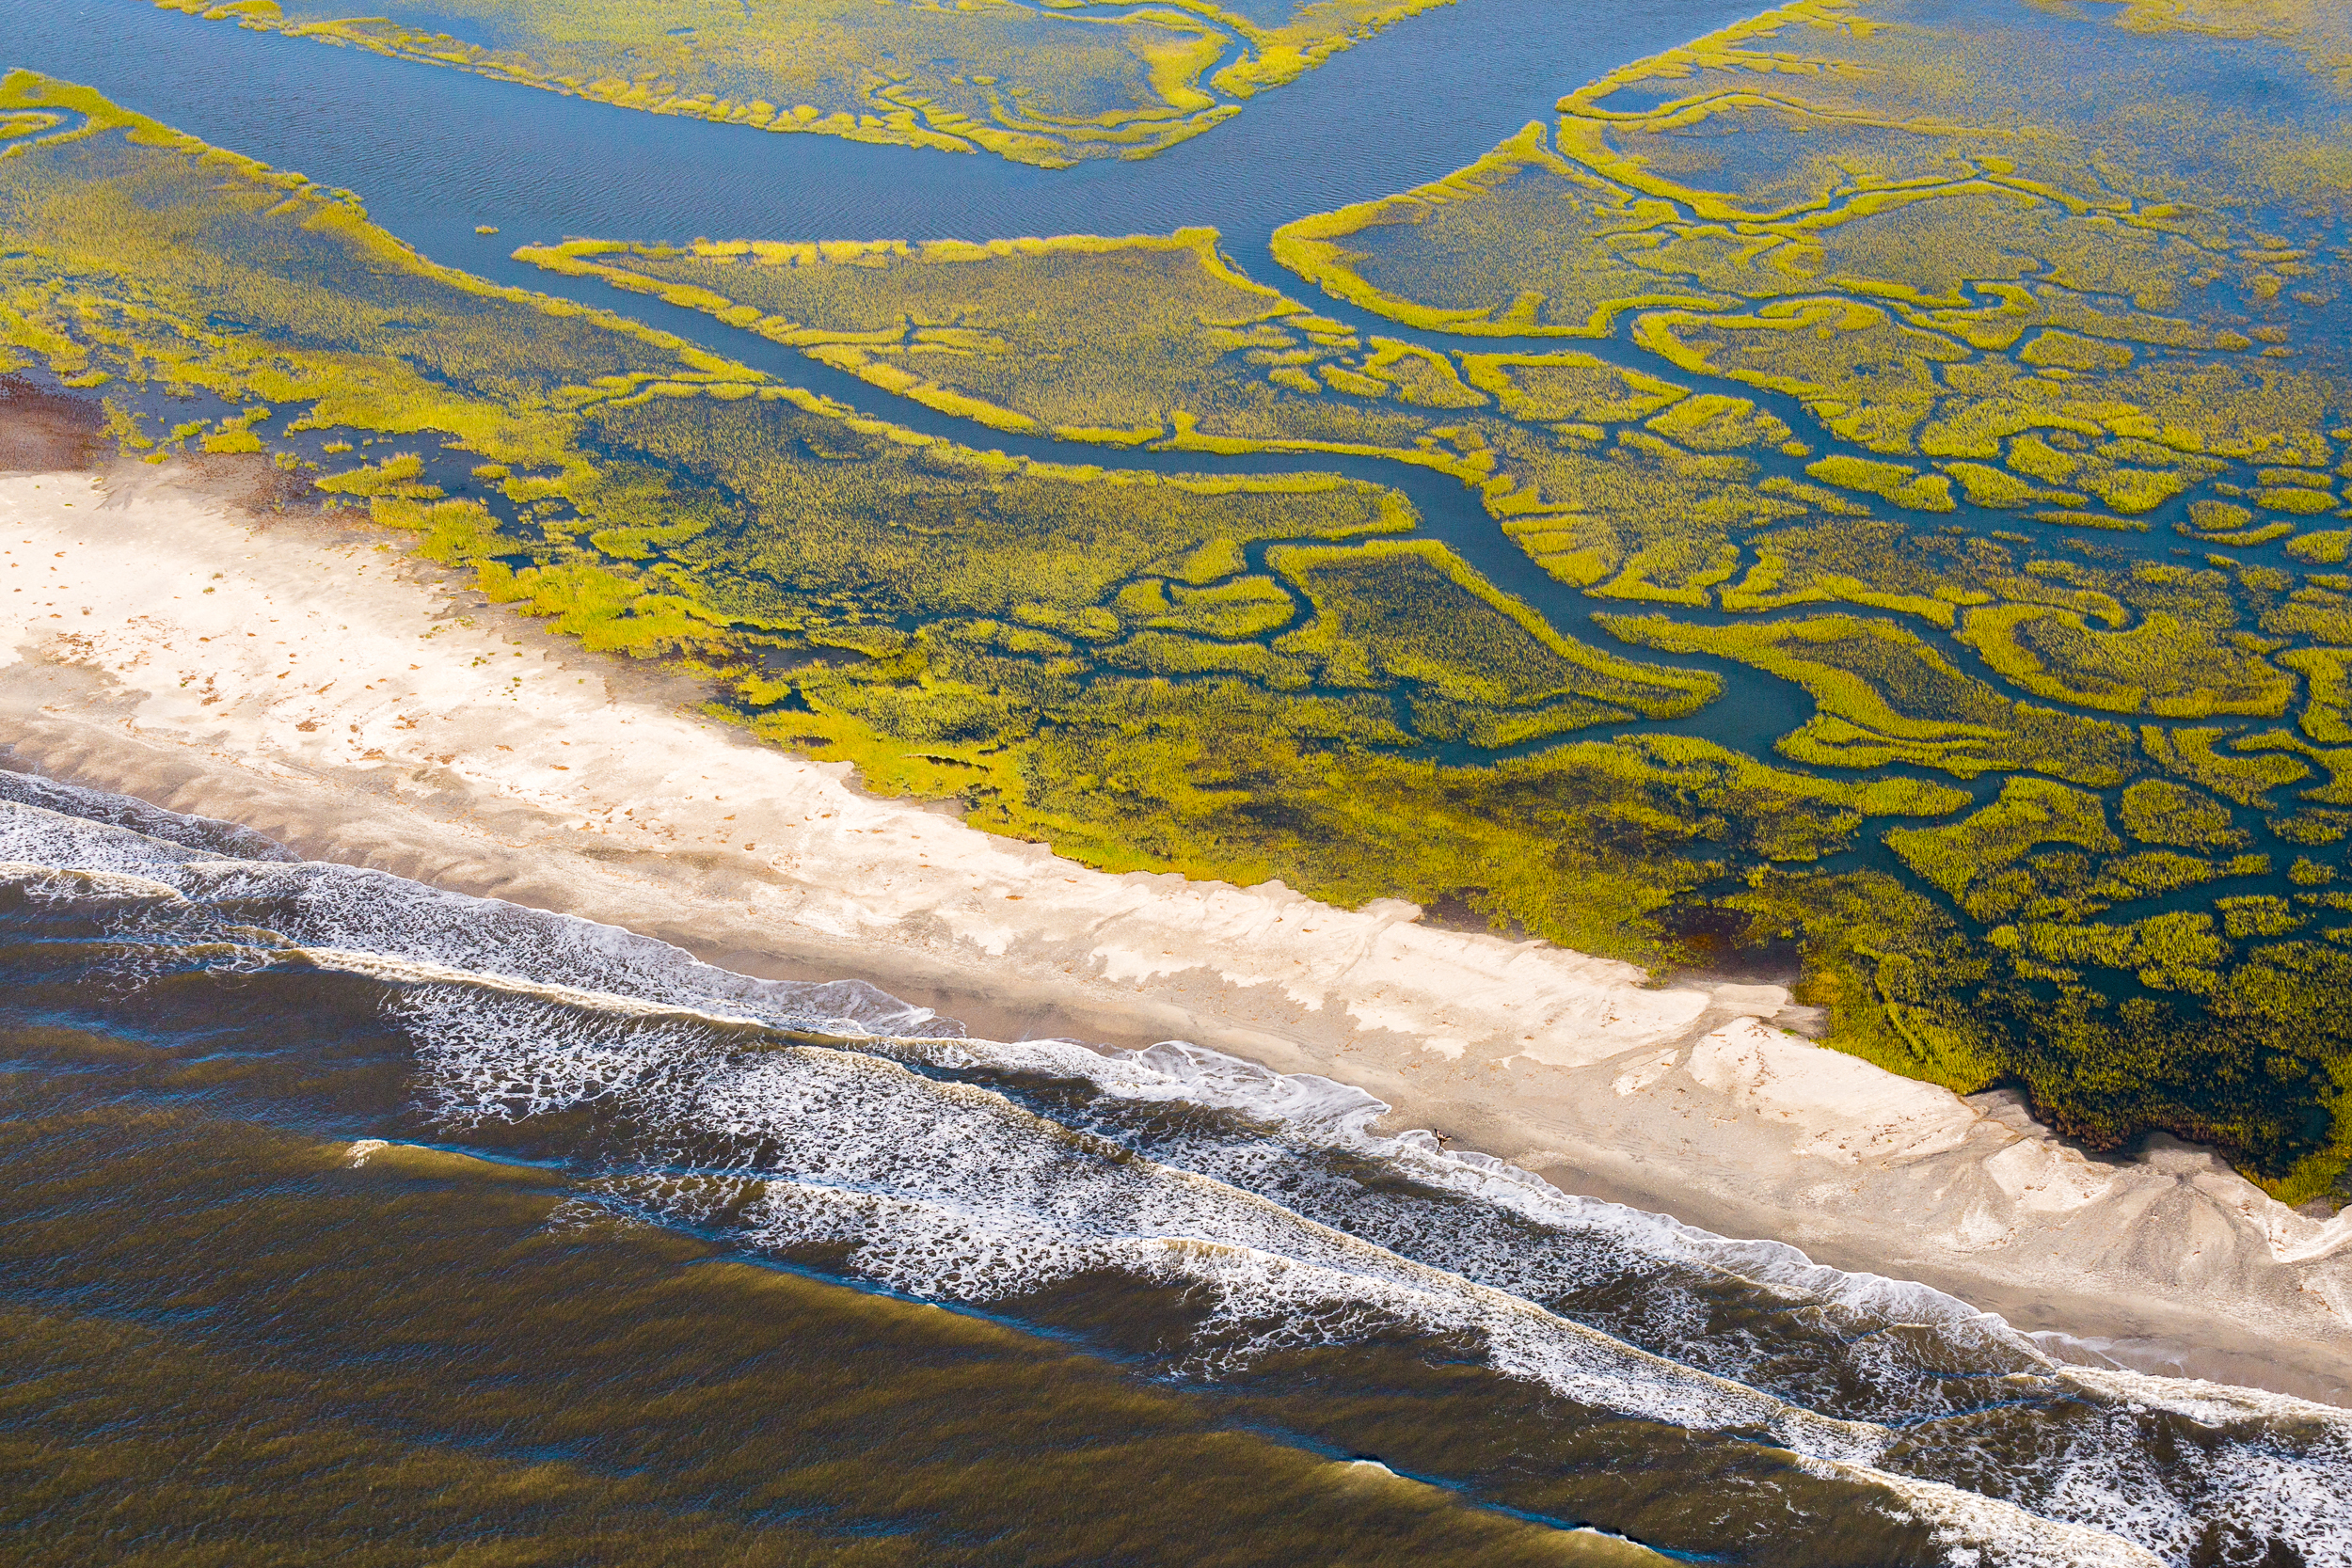 A thin strip of beach separates the Atlantic Ocean from tidal wetlands along the South Carolina coast.